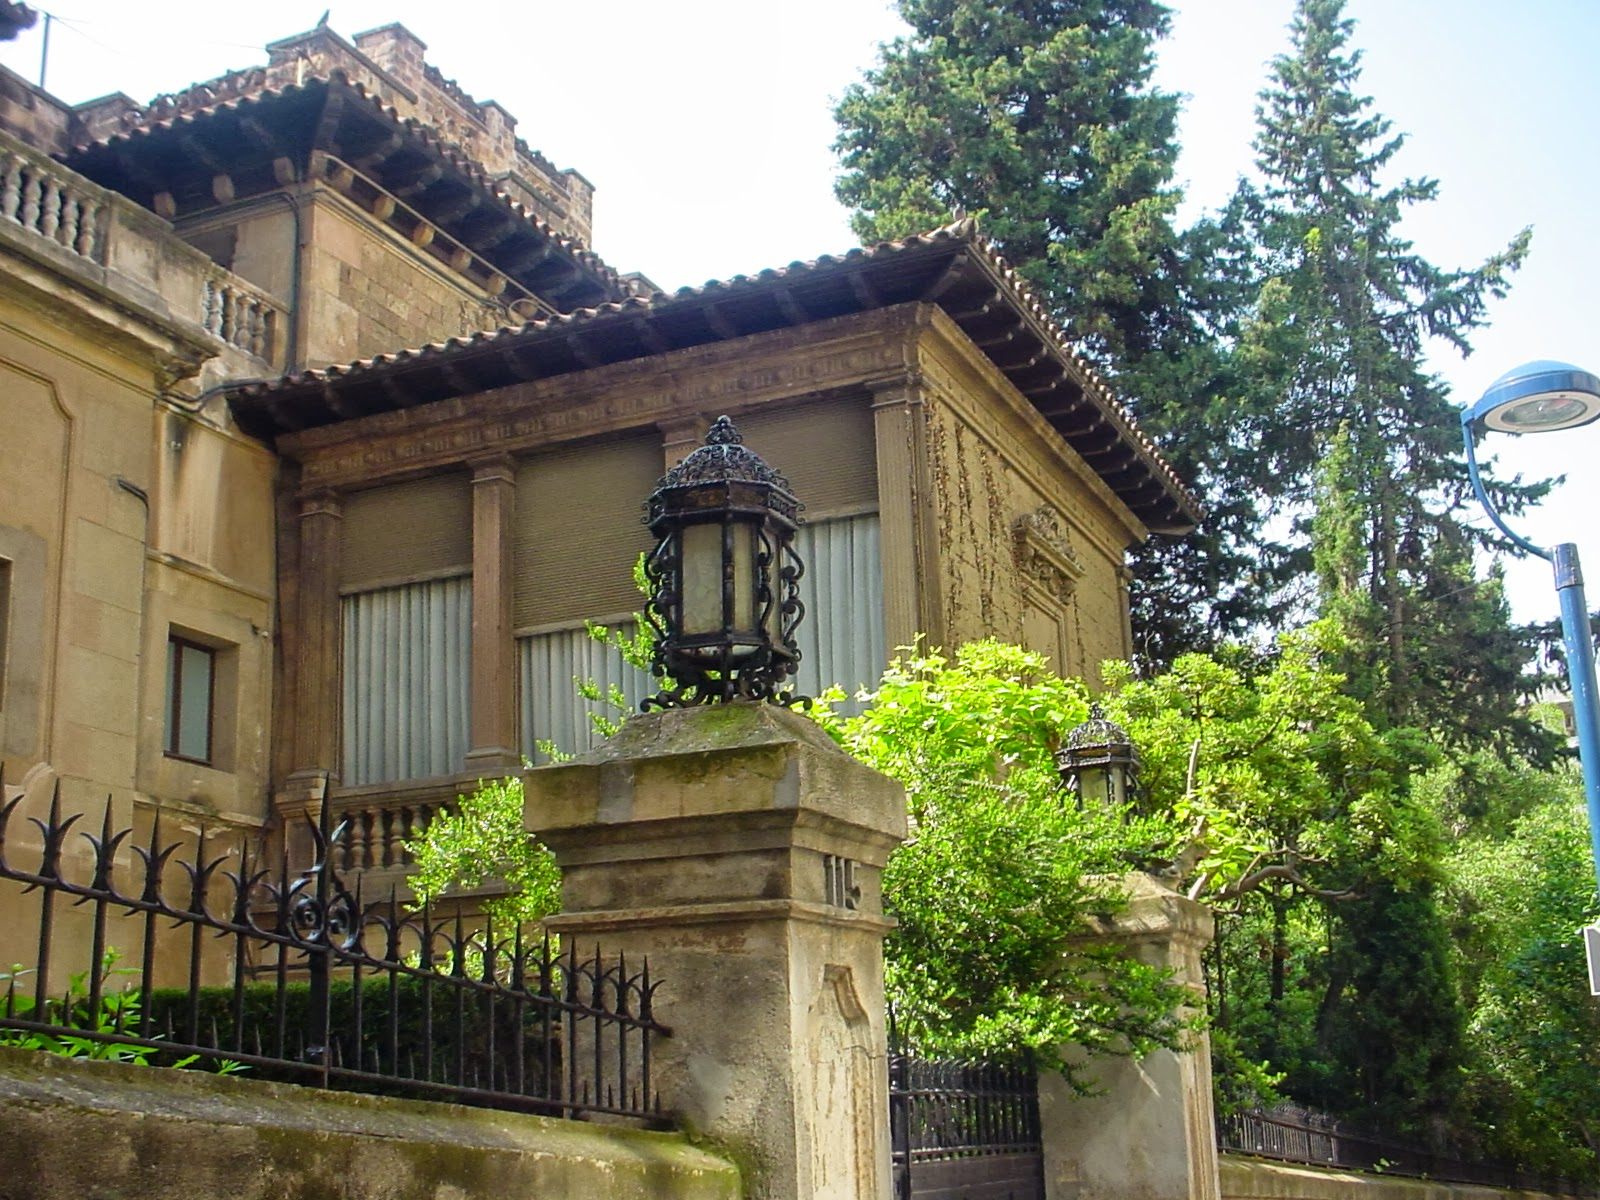 One of the houses of the state will be a public library dedicated especially to the foreigners who live in barcelona